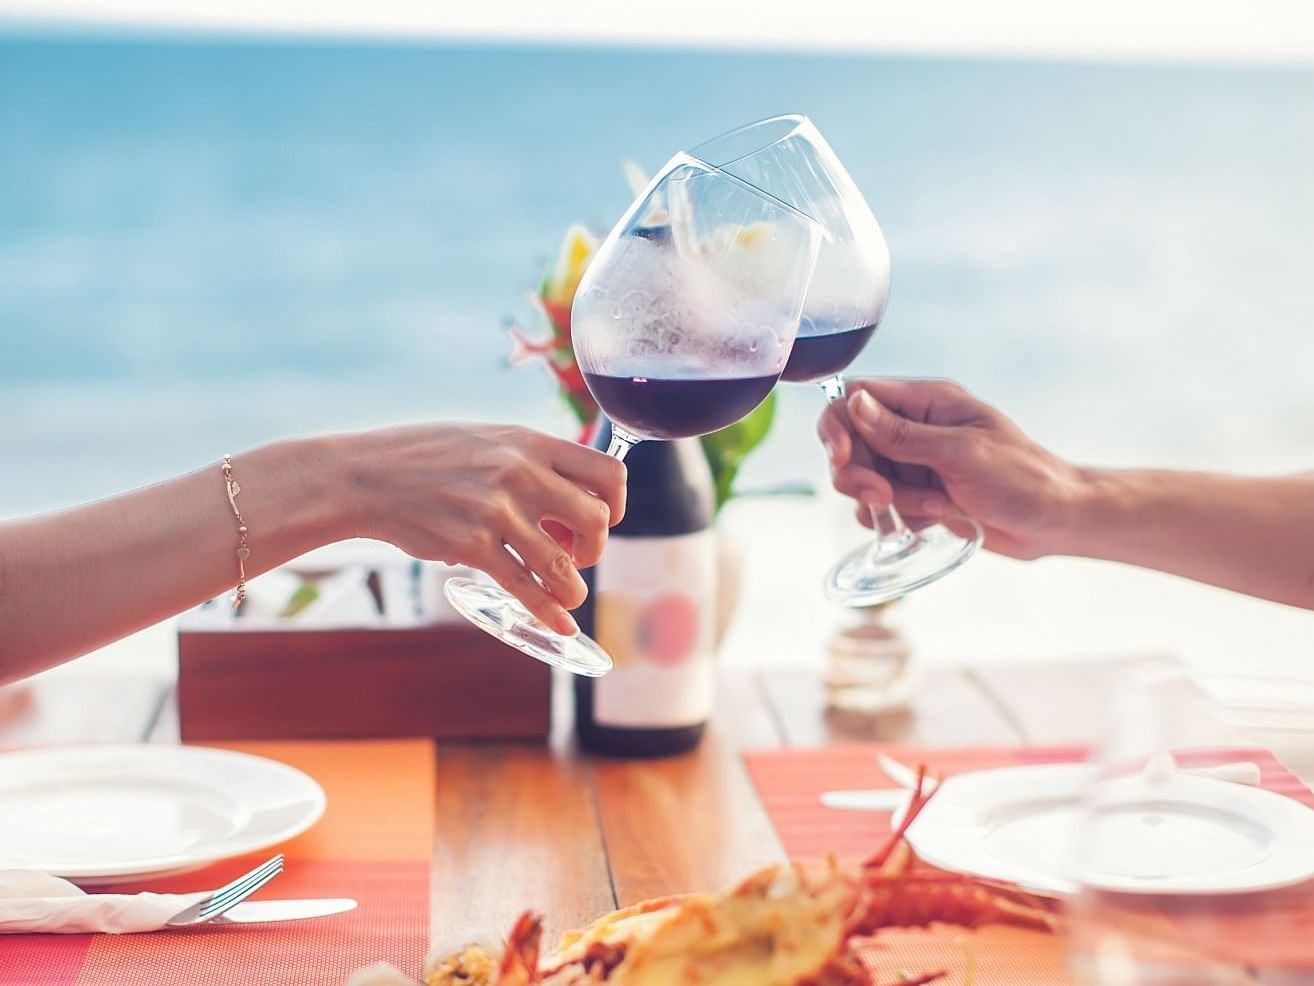 Two people having toast with wine at Daydream Island Resort